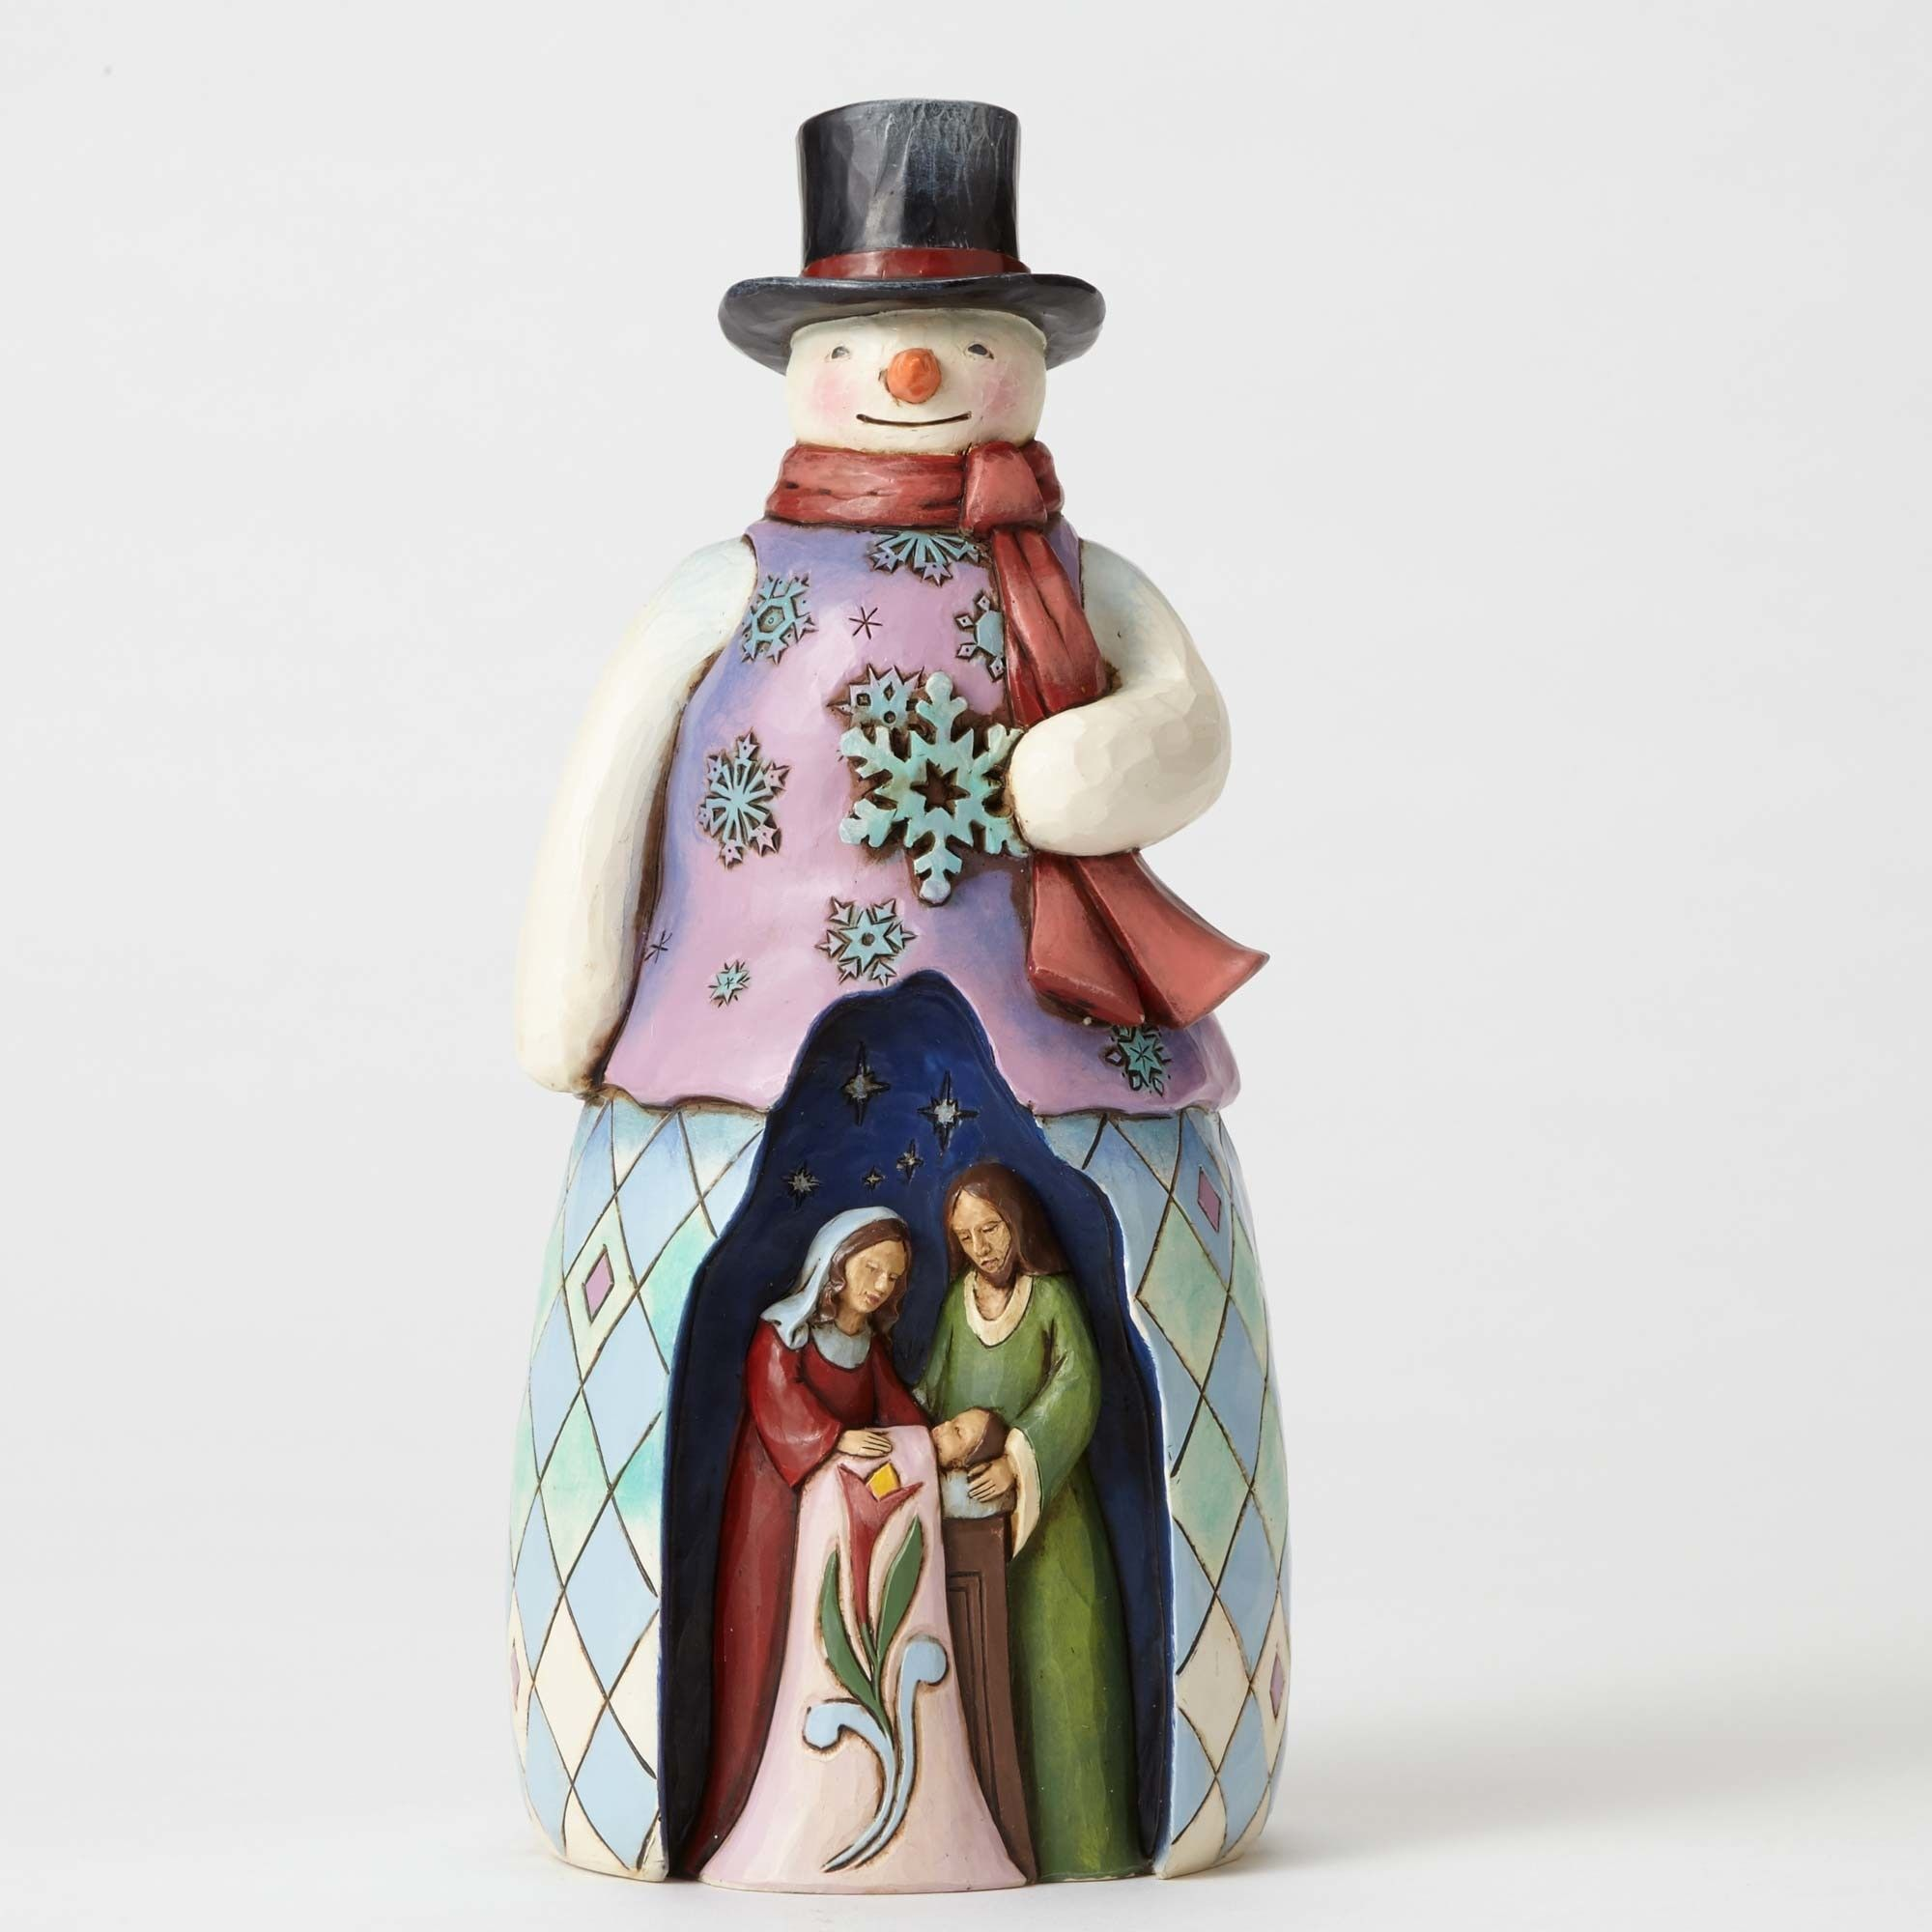 Home interior masterpiece figurines cold night warm miraclesnowman with holy family scene figurine